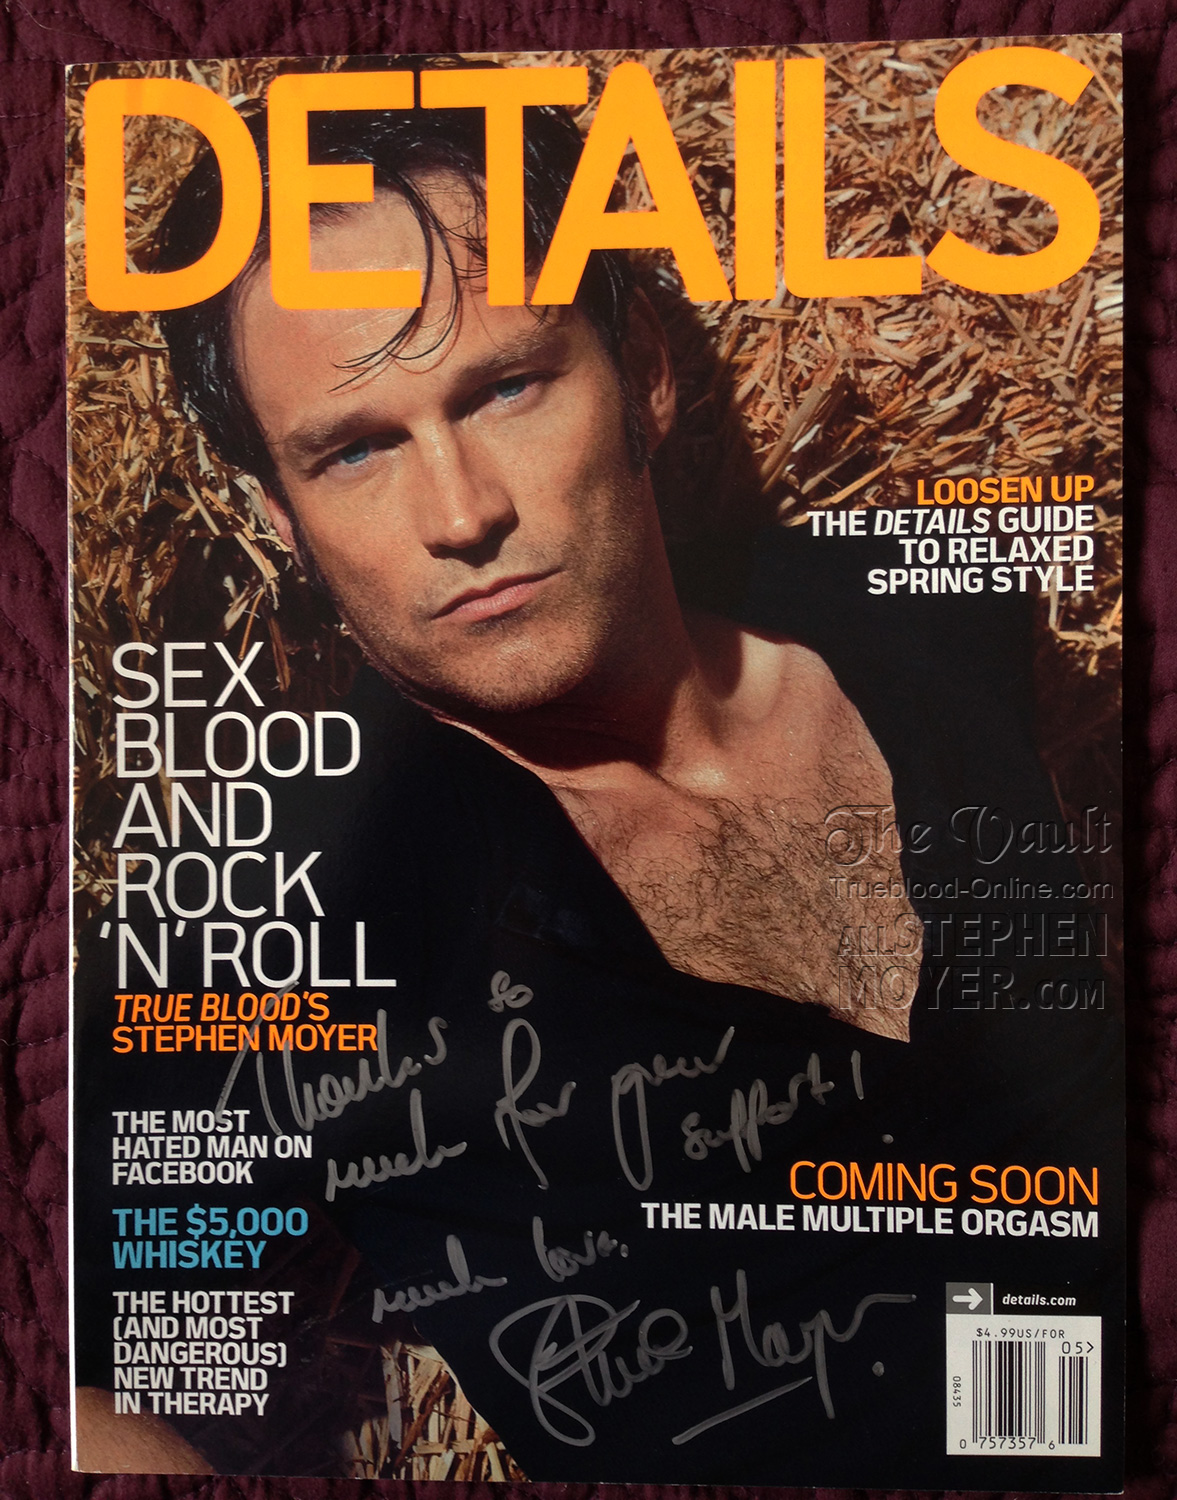 Another Winner Of A Details Magazine Signed By Stephen Moyer